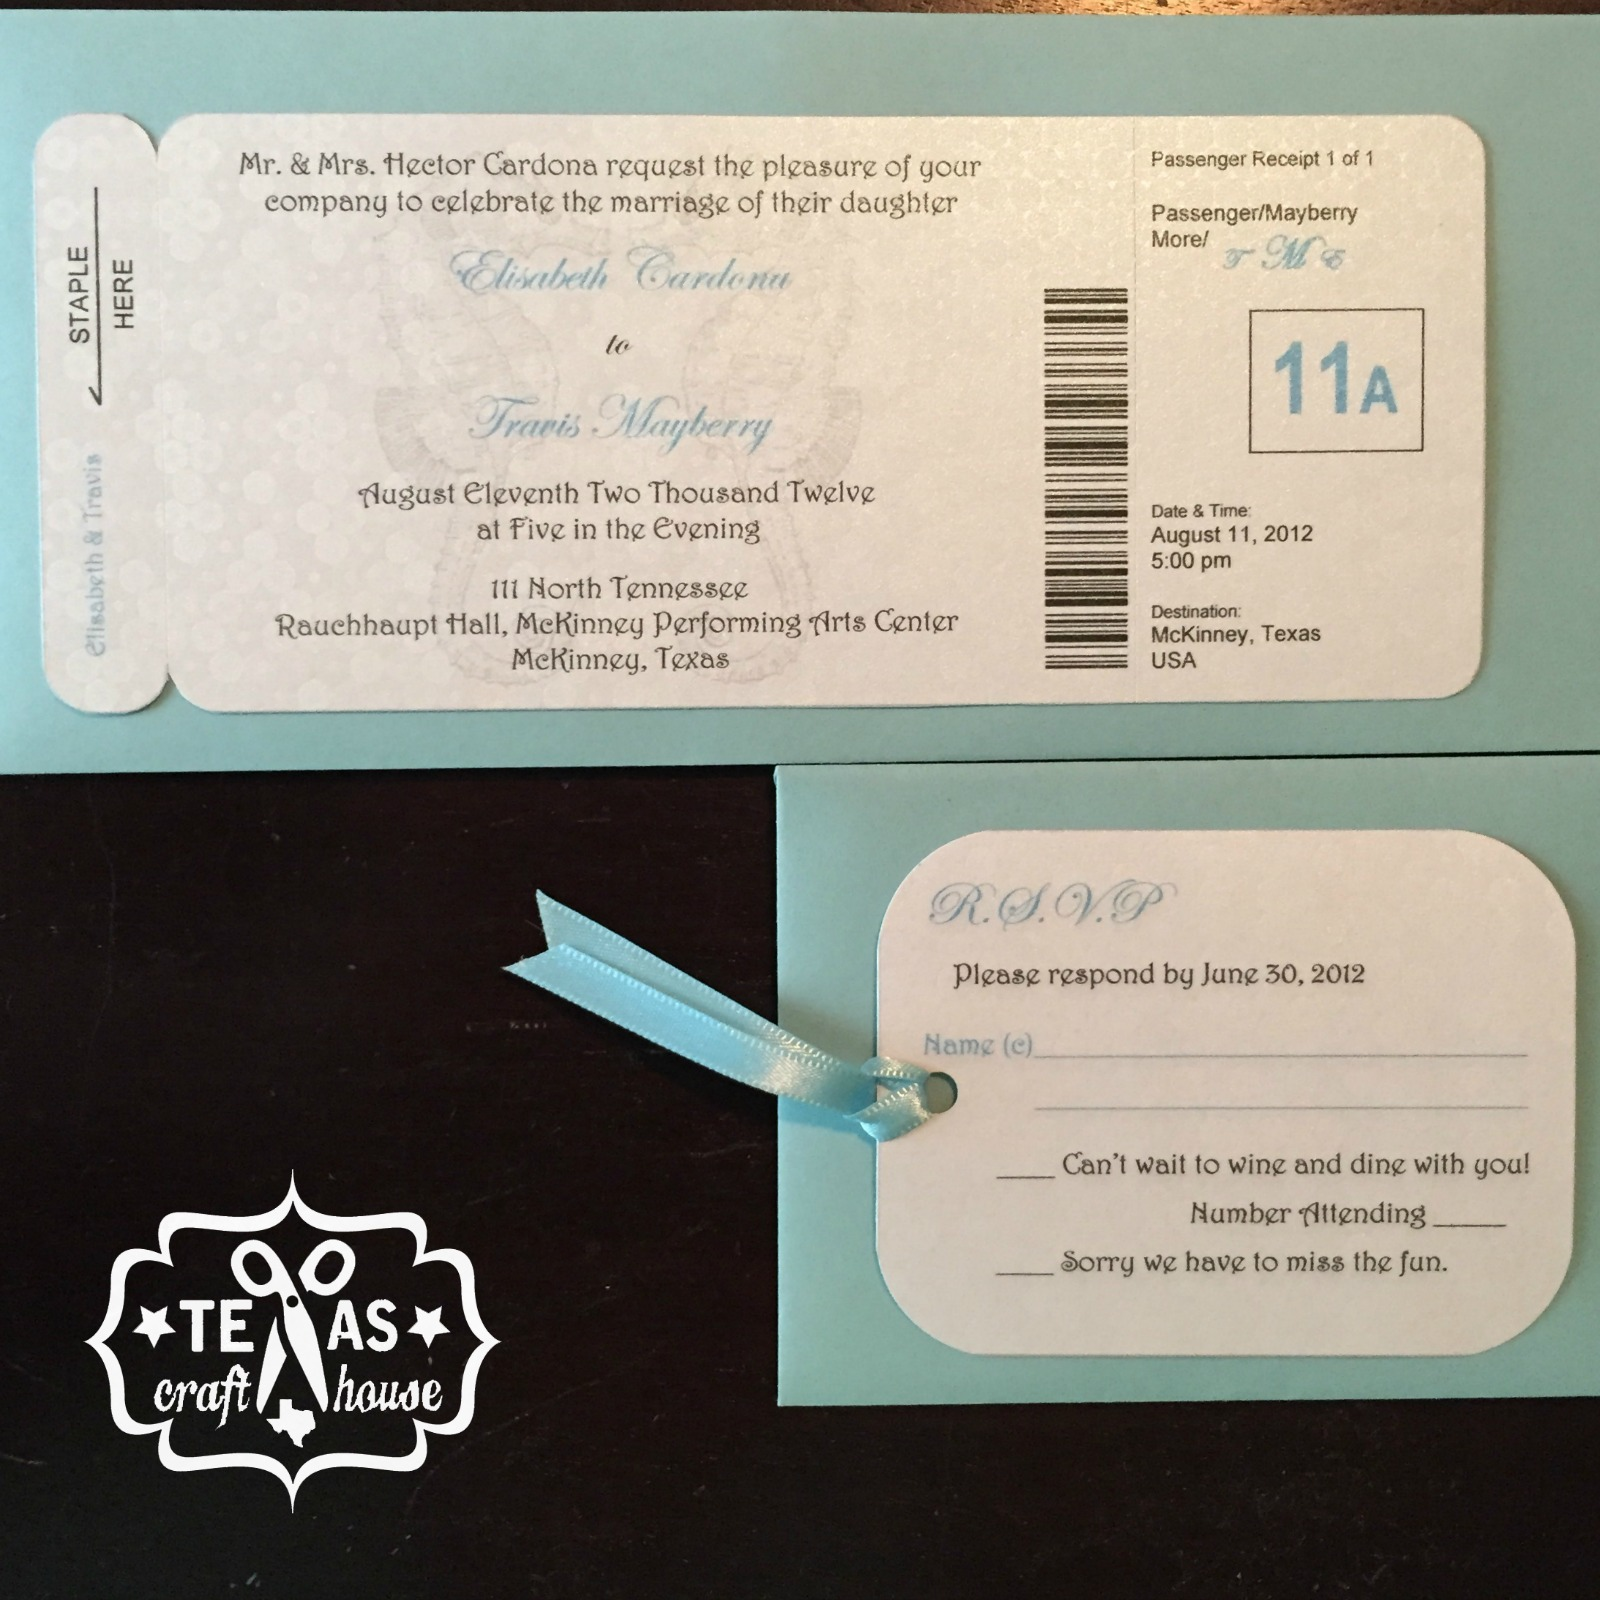 Make Your Own Wedding Invitations | Texas Craft House